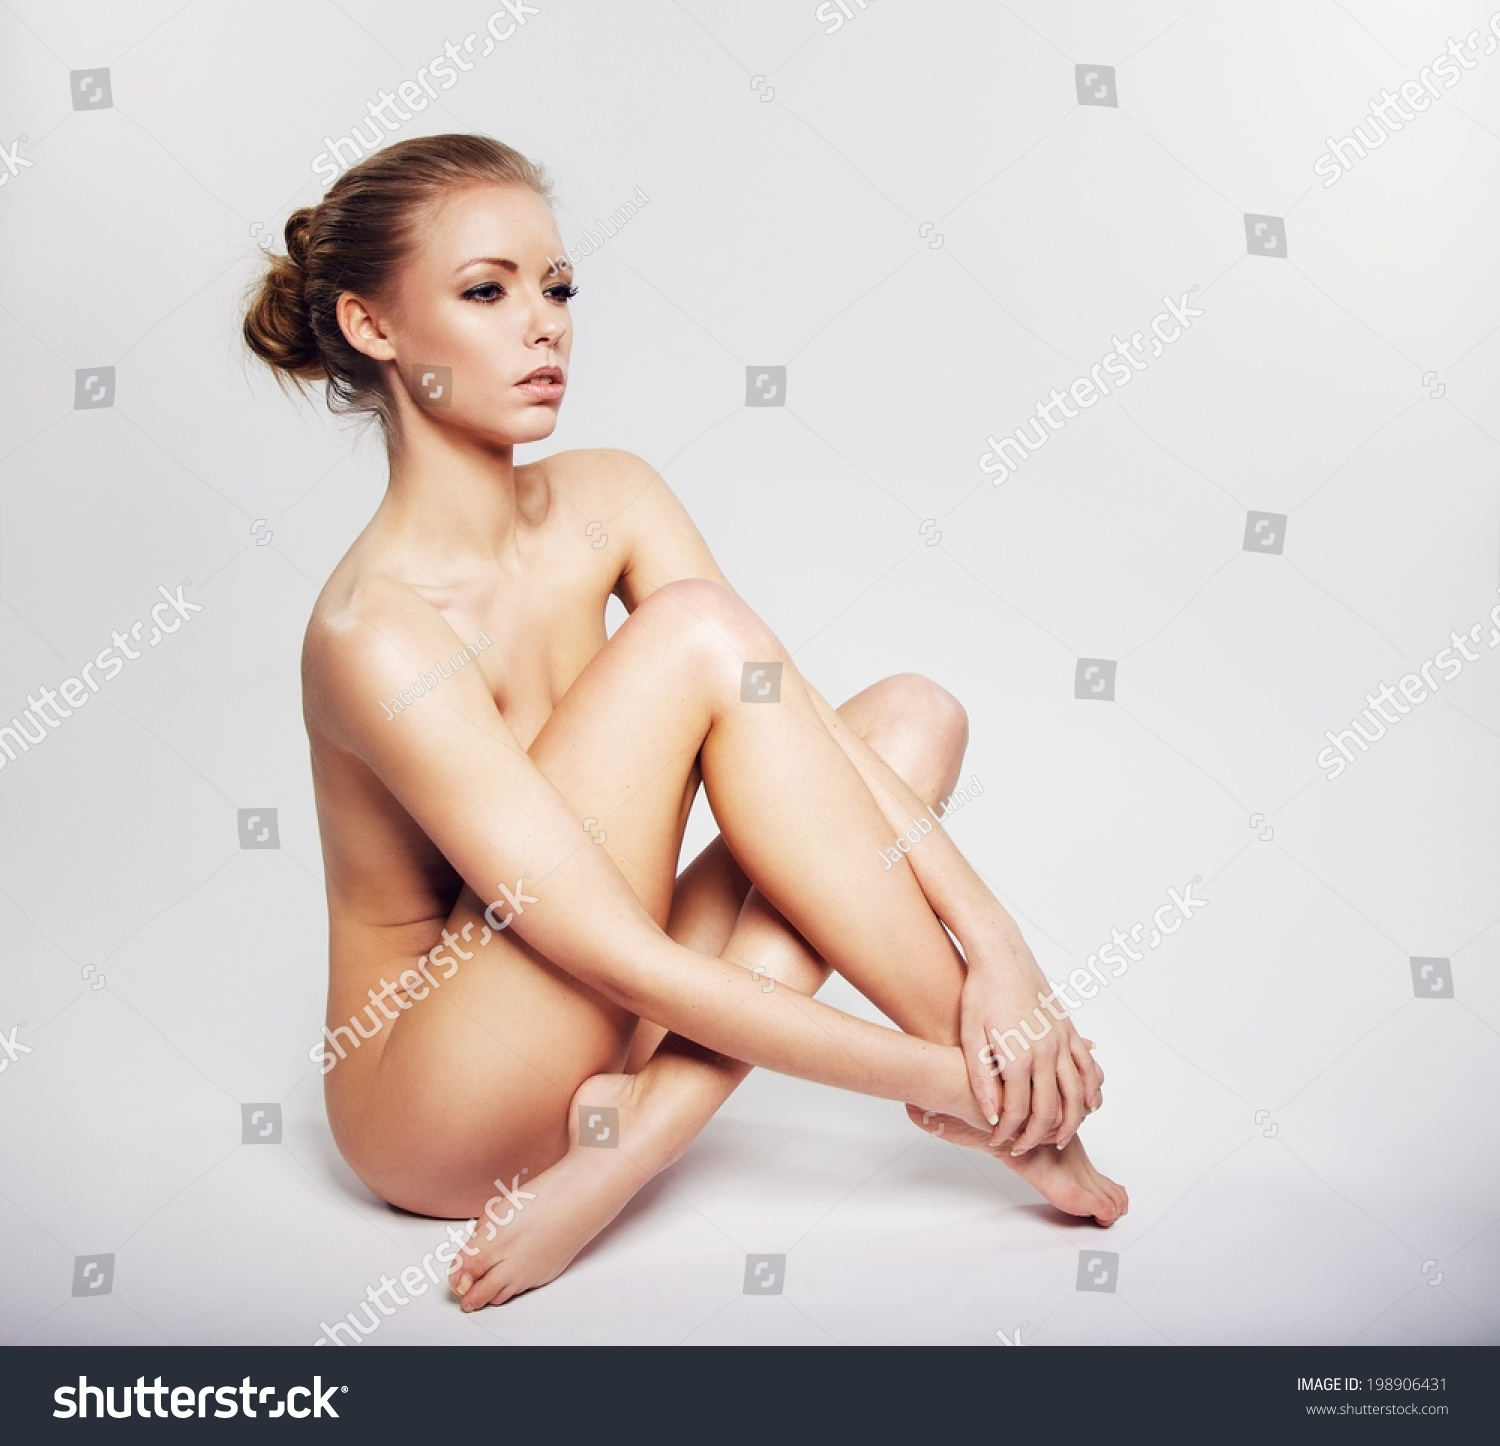 Nude art model sitting